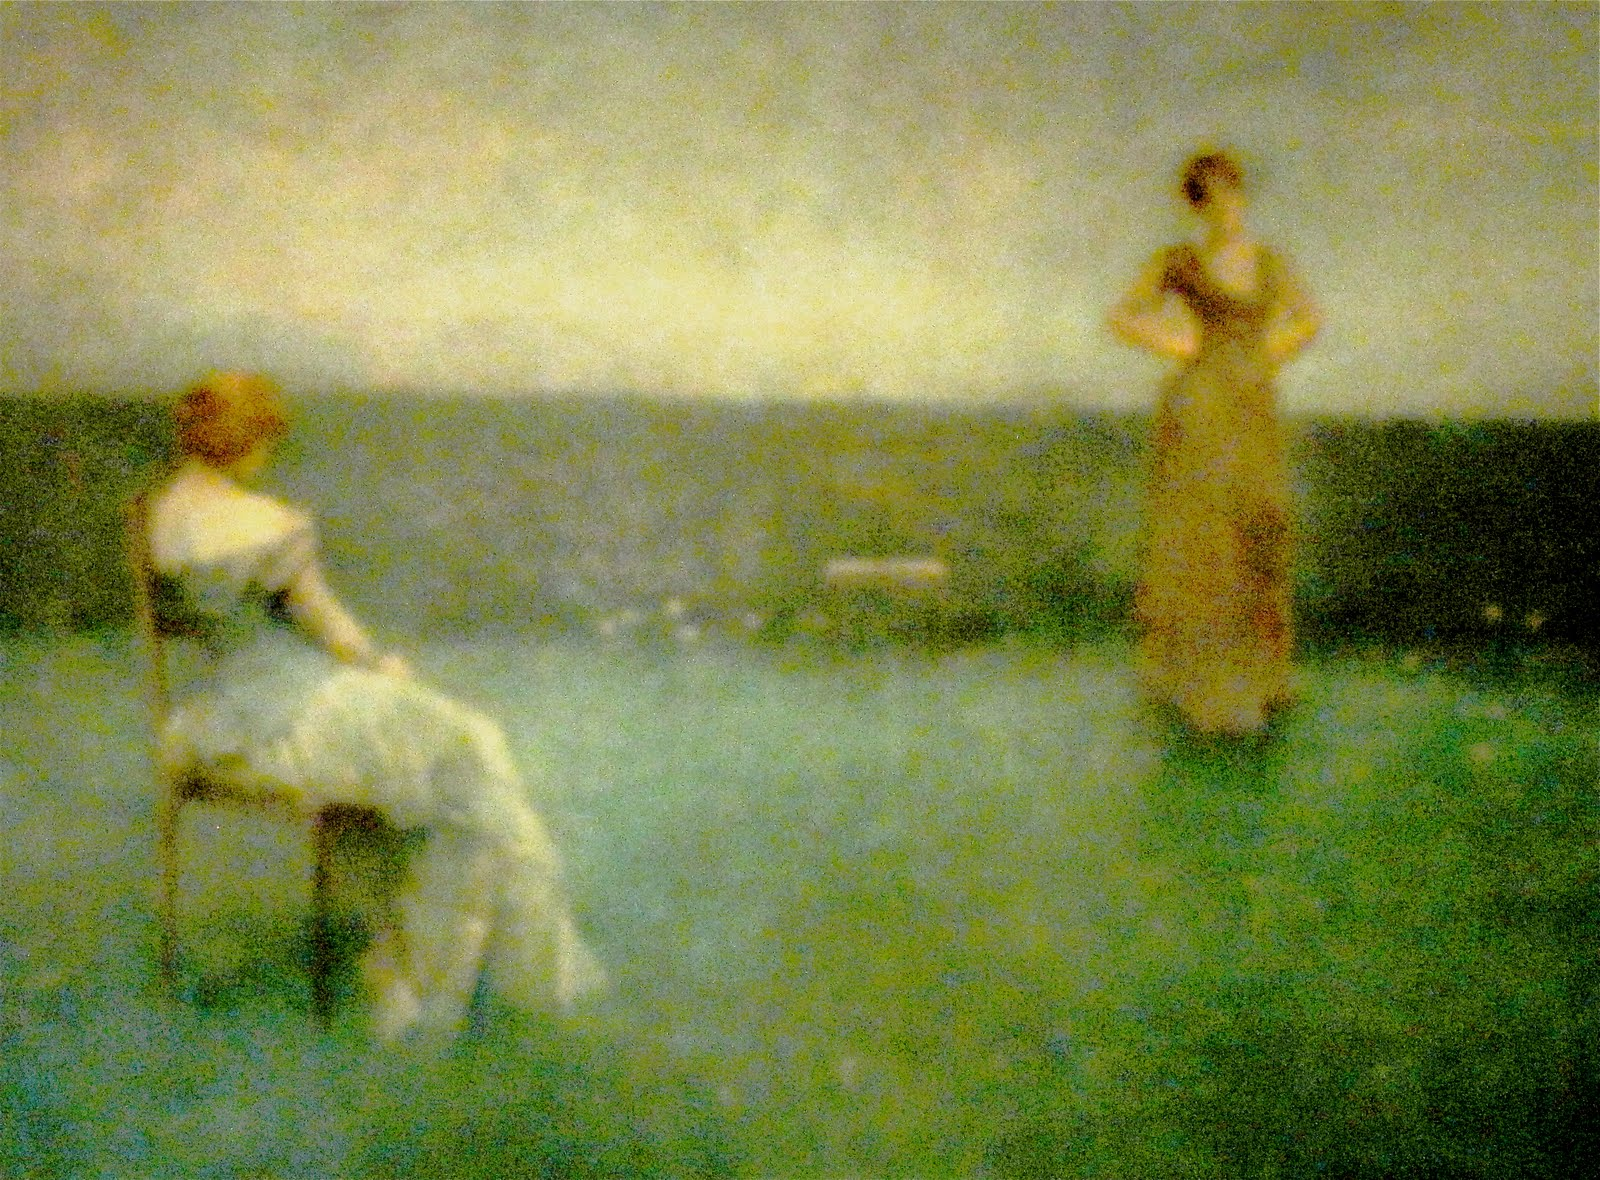 yeats romanticism to modernism It is much easier to show than to tell what modernism brought to poetry   gerard manley hopkins, robinson jeffers, william butler yeats, wallace stevens ,  another aspect of romanticism and modernism is the poet's increasing  sense.